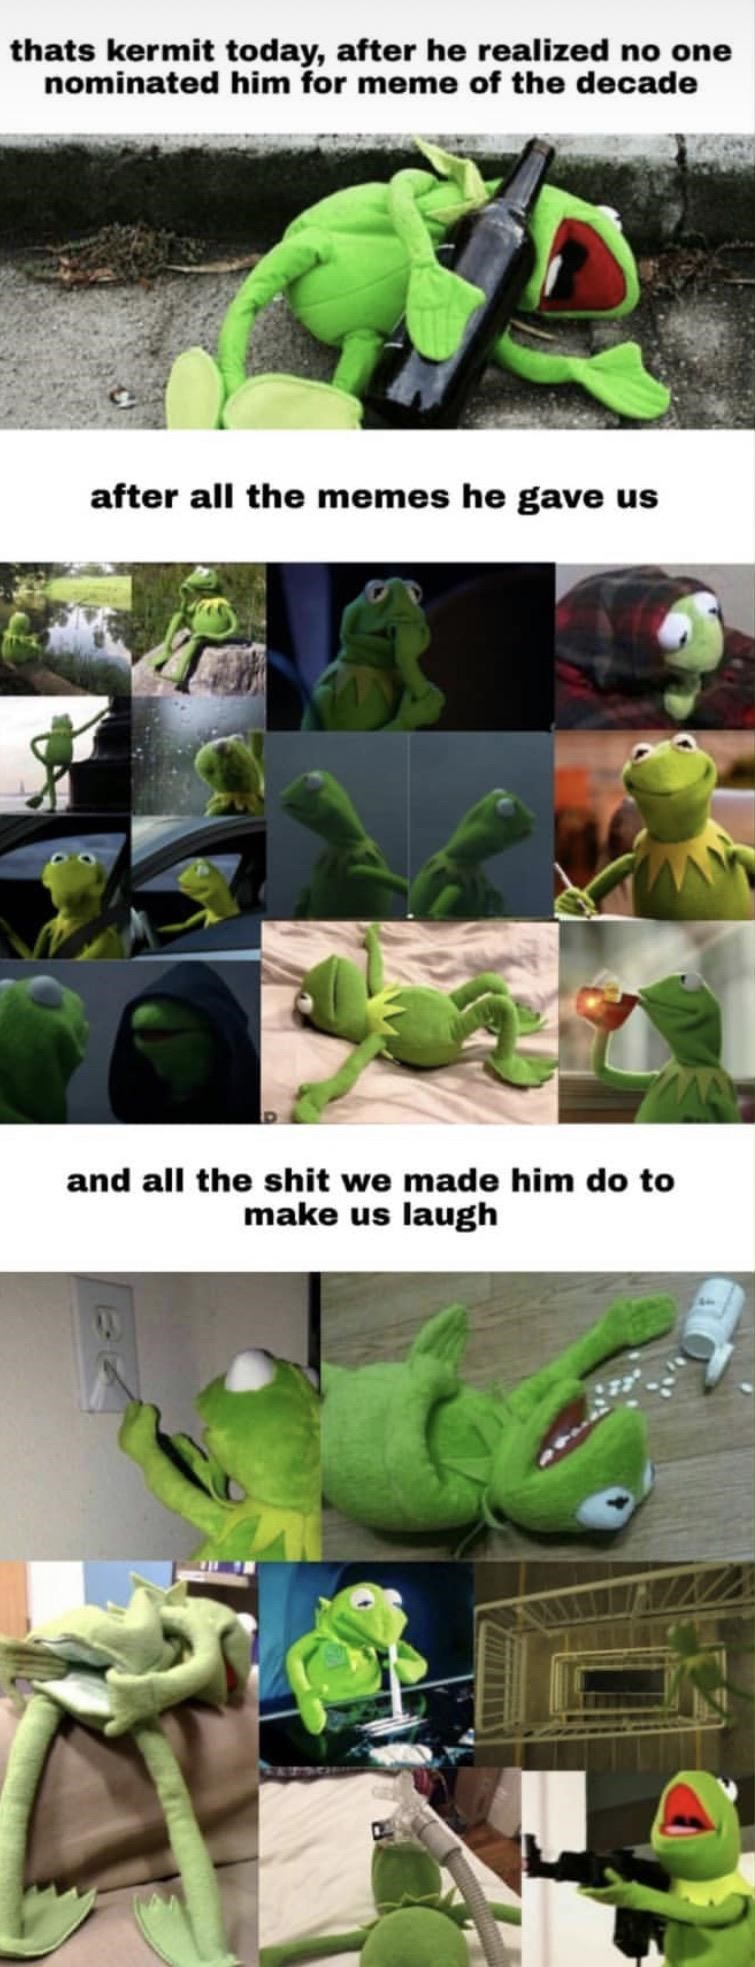 Leaf - thats kermit today, after he realized no one nominated him for meme of the decade after all the memes he gave us and all the shit we made him do to make us laugh